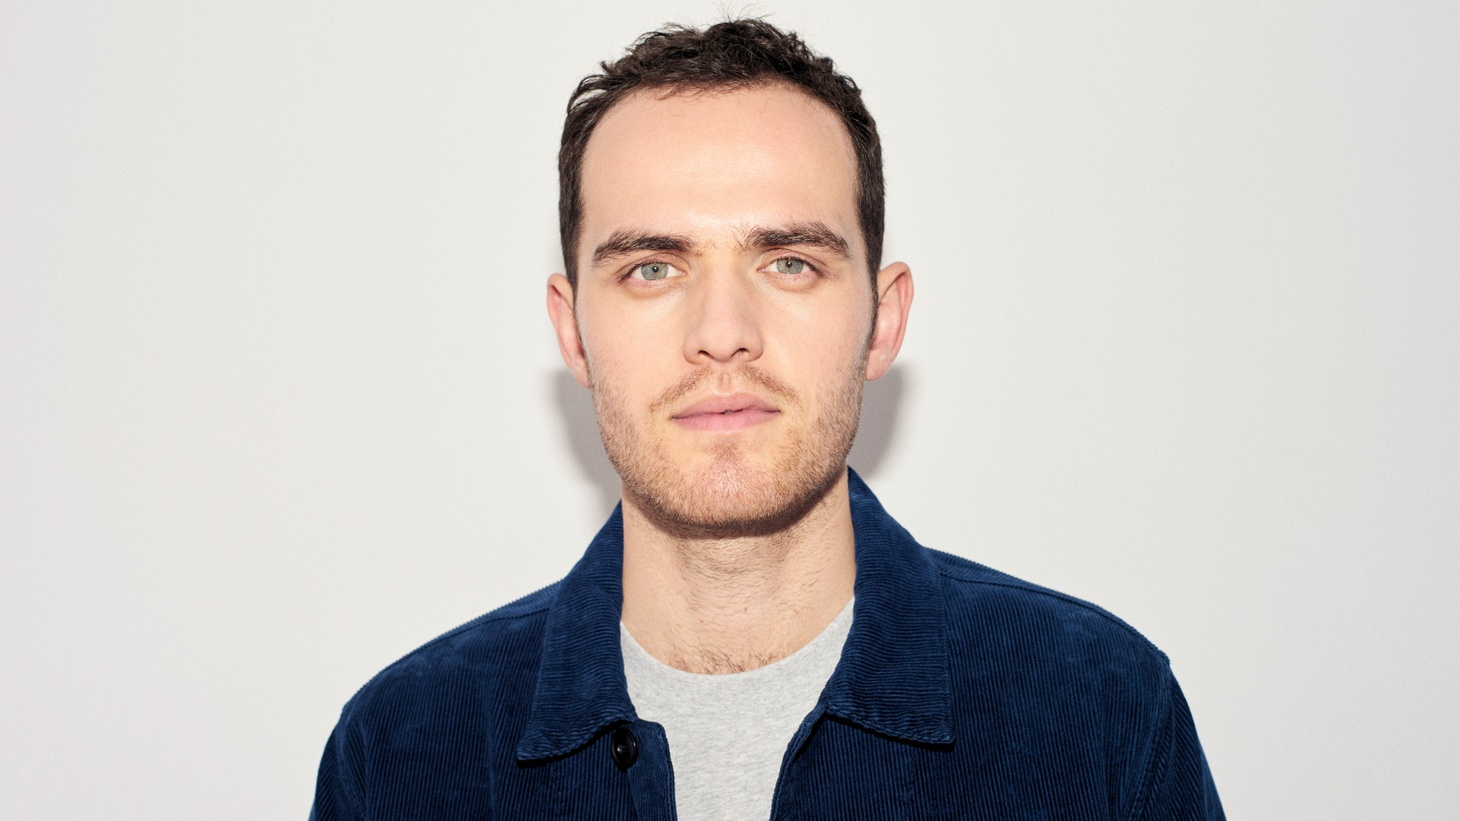 Jordan Rakei has become a steady beacon of the soulful and intimate music coming out of the London music scene. At 27 years old, he's 3 albums into his goal of 5 by the age of 30.